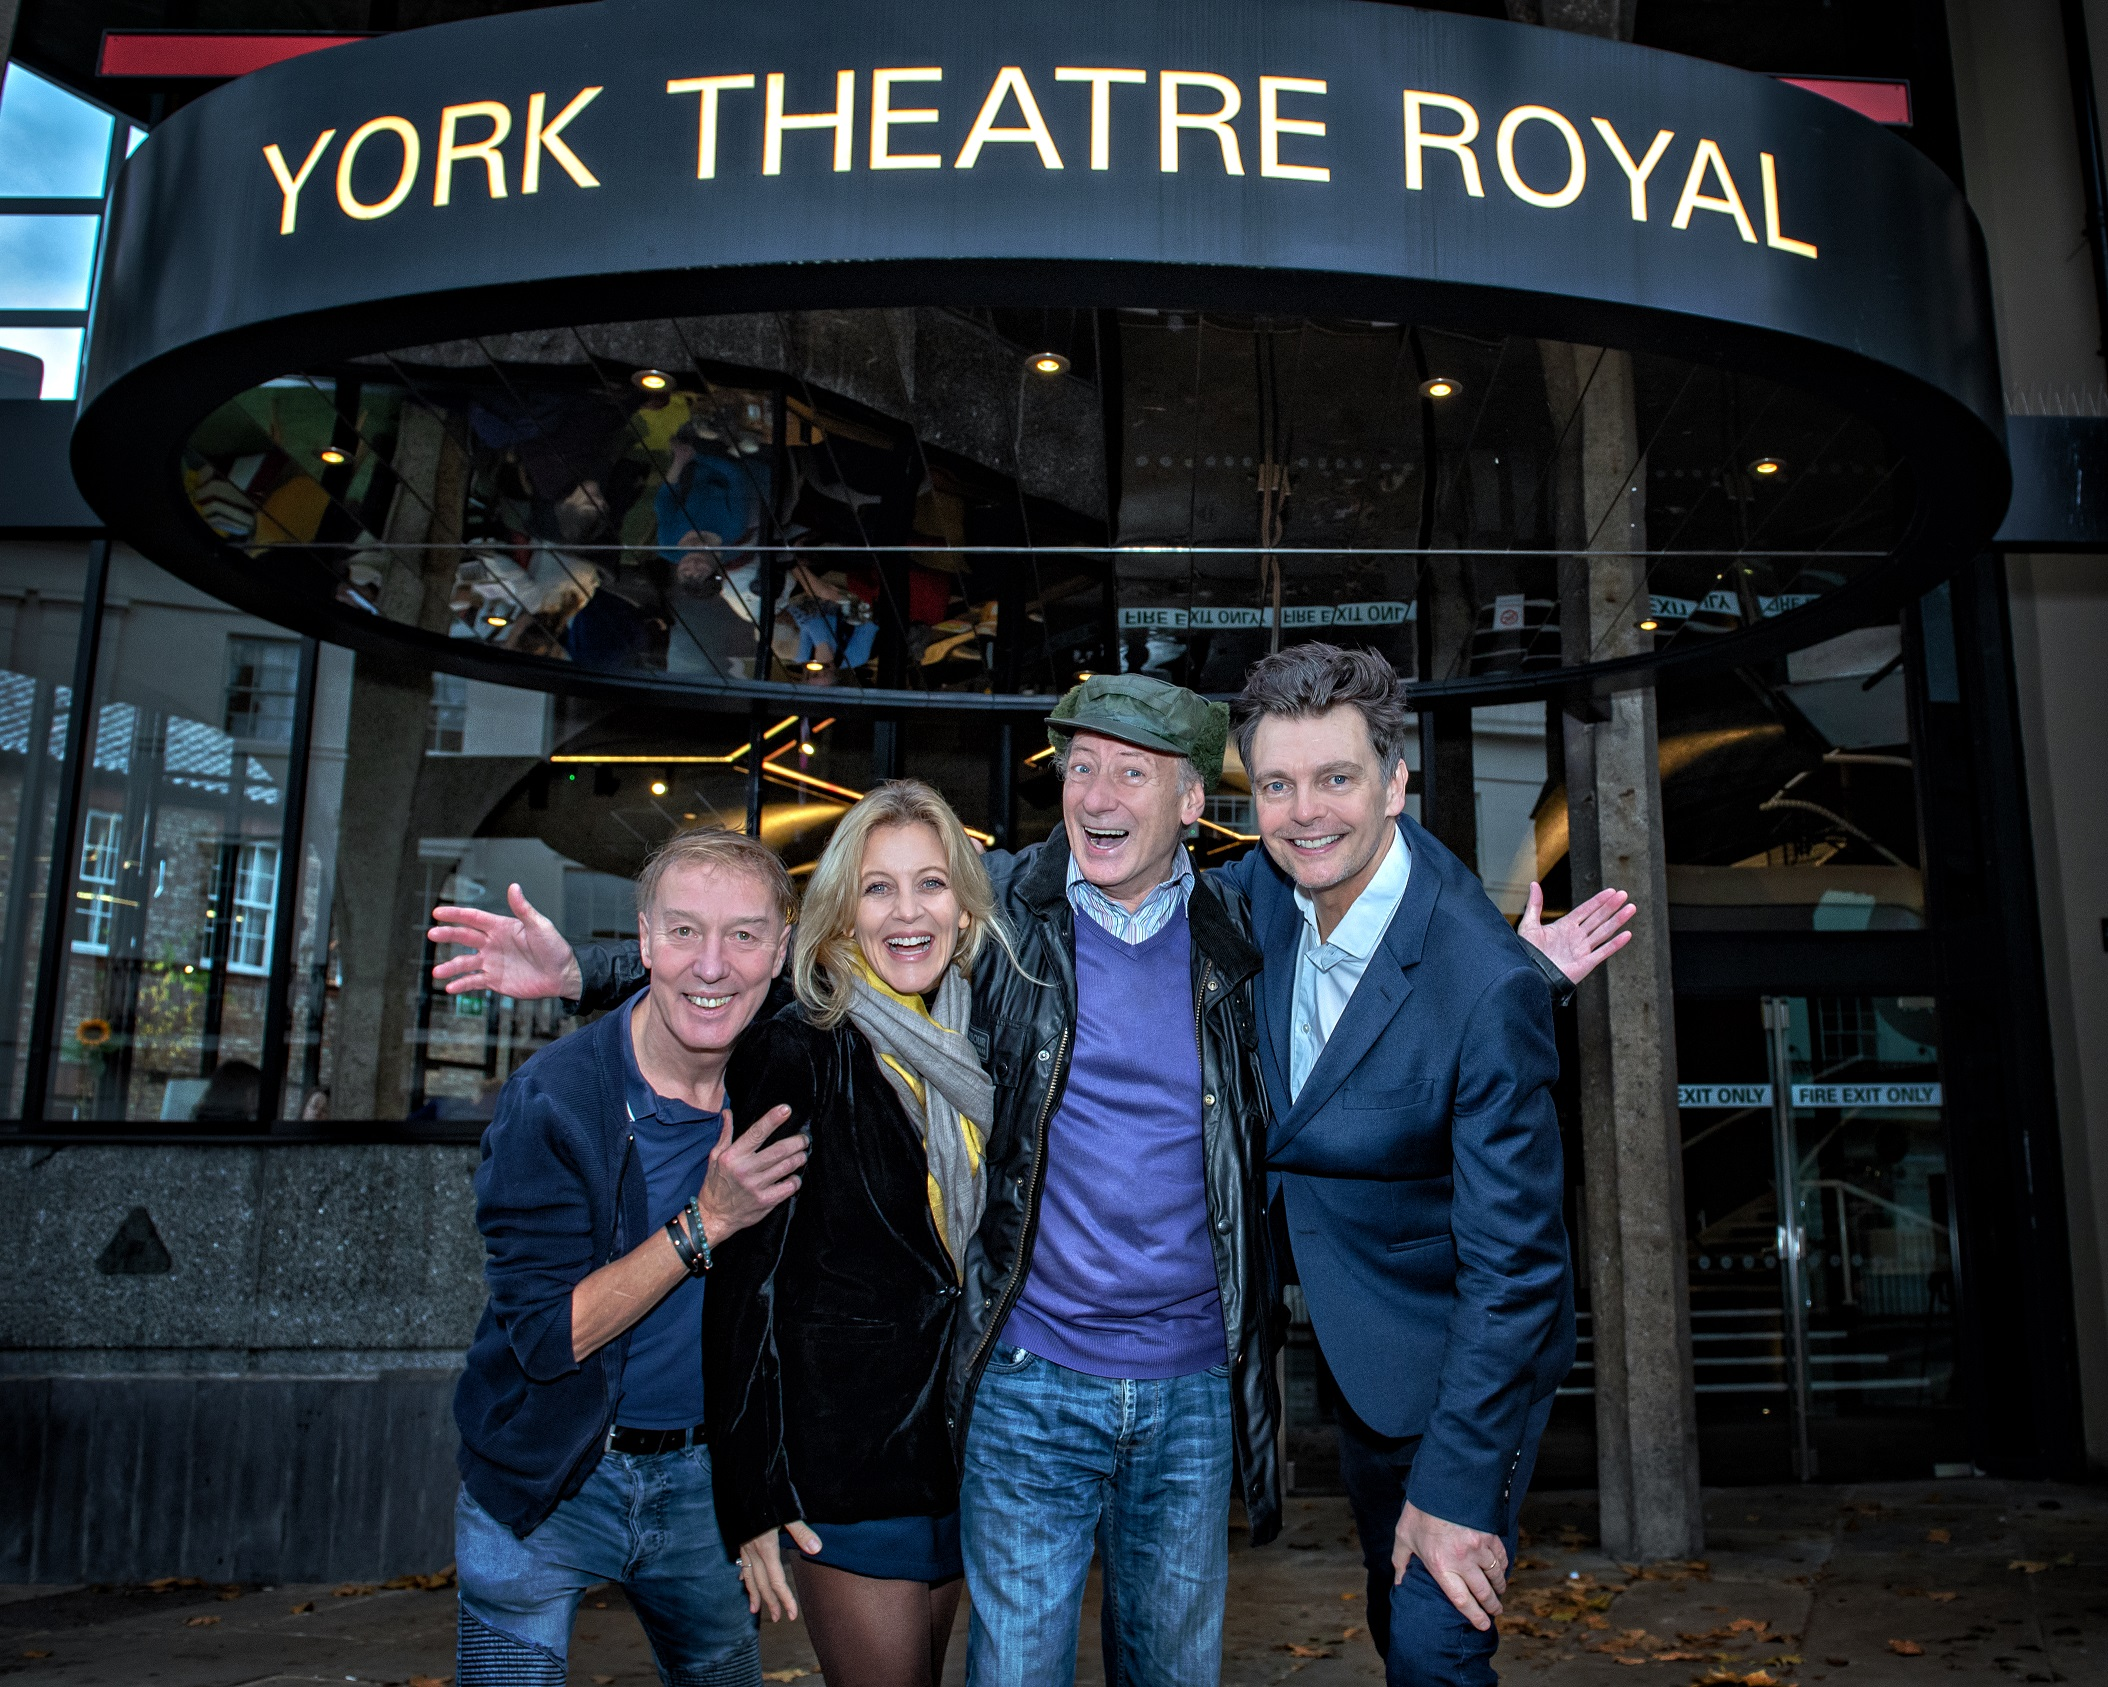 Photo call for The Grand Old Dame of York. Martin Barrass, Suzy Cooper, Berwick Kaler & David Leonard. Photography by Anthony Robling.jpg